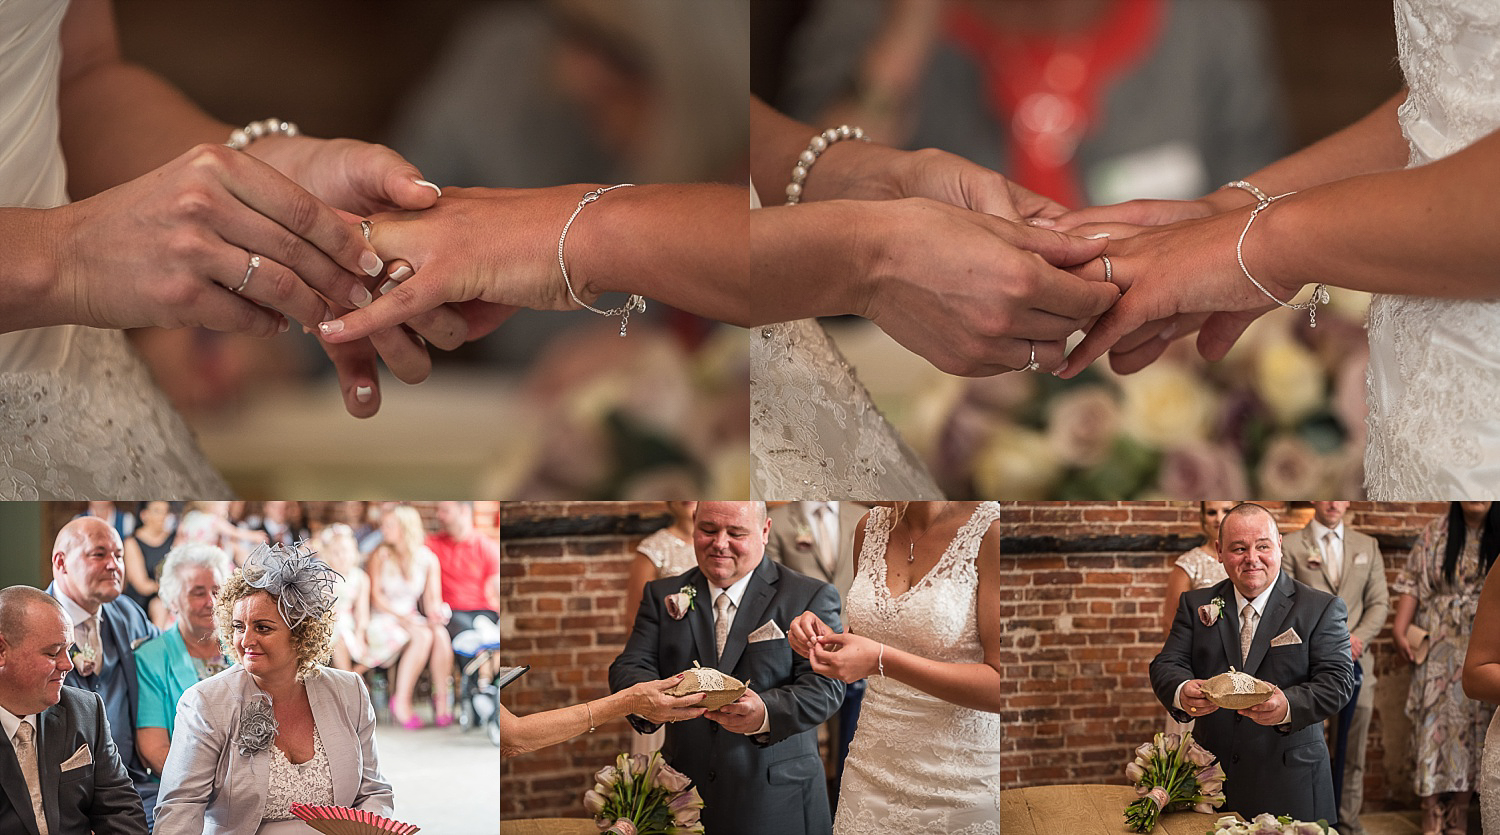 brides exchanging rings during ceremony